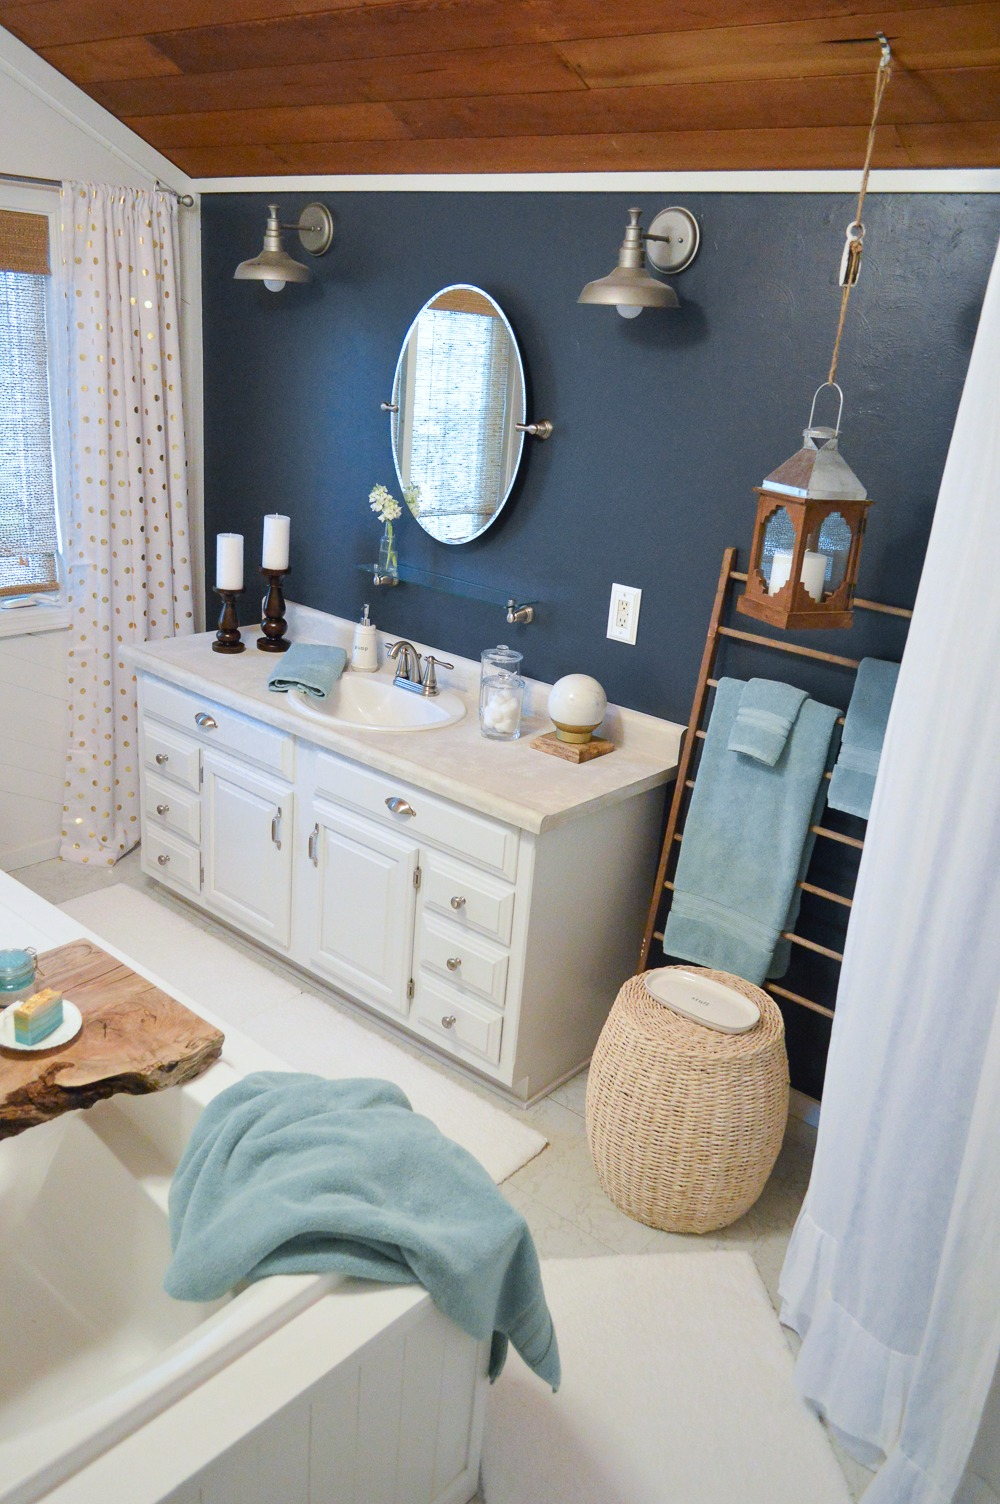 Aqua Summer Bathroom Refresh | Eclectic bath mini makeover; Hale Navy walls, white vanity, galvanized farmhouse lighting.